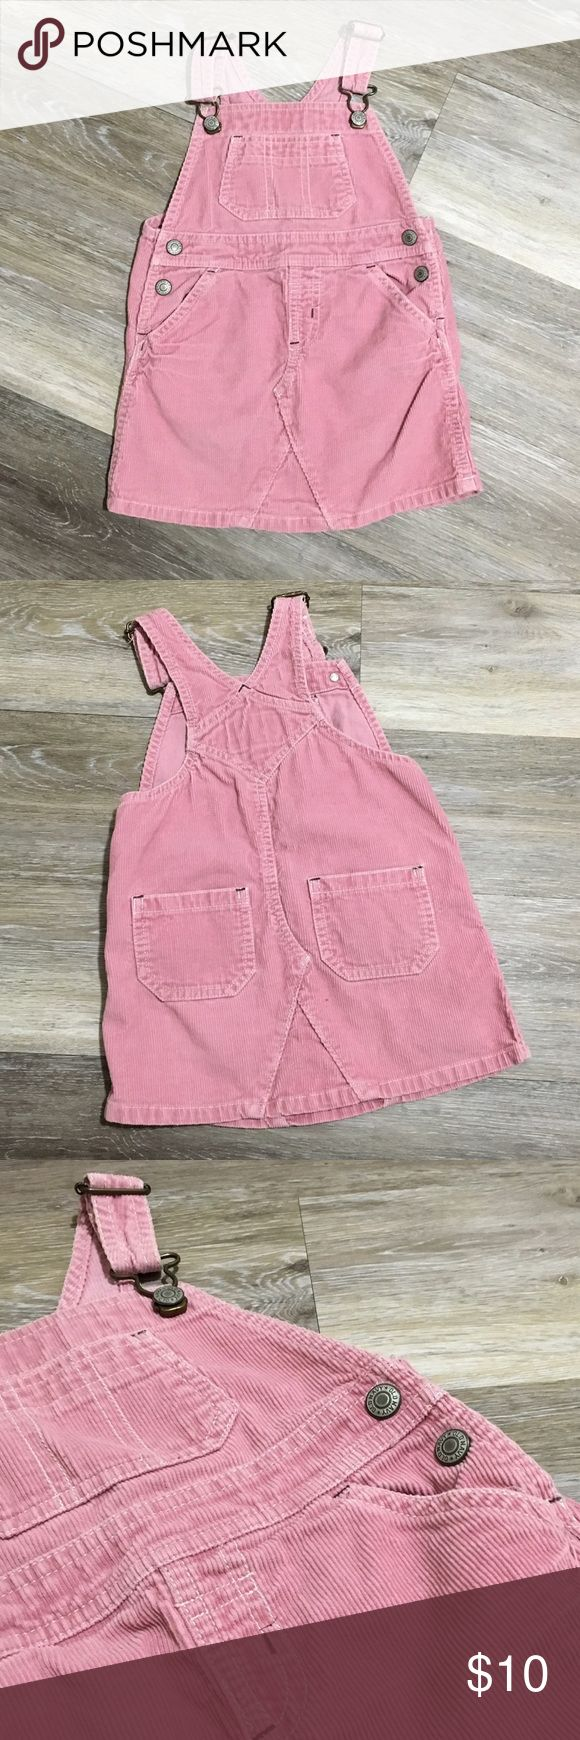 Old Navy Corduroy Overalls Skirt Blush pink with 3 front pockets for your 2t to store her treasures. Adjustable straps and 2 back pockets. No imperfections. Old Navy Bottoms Jumpsuits & Rompers